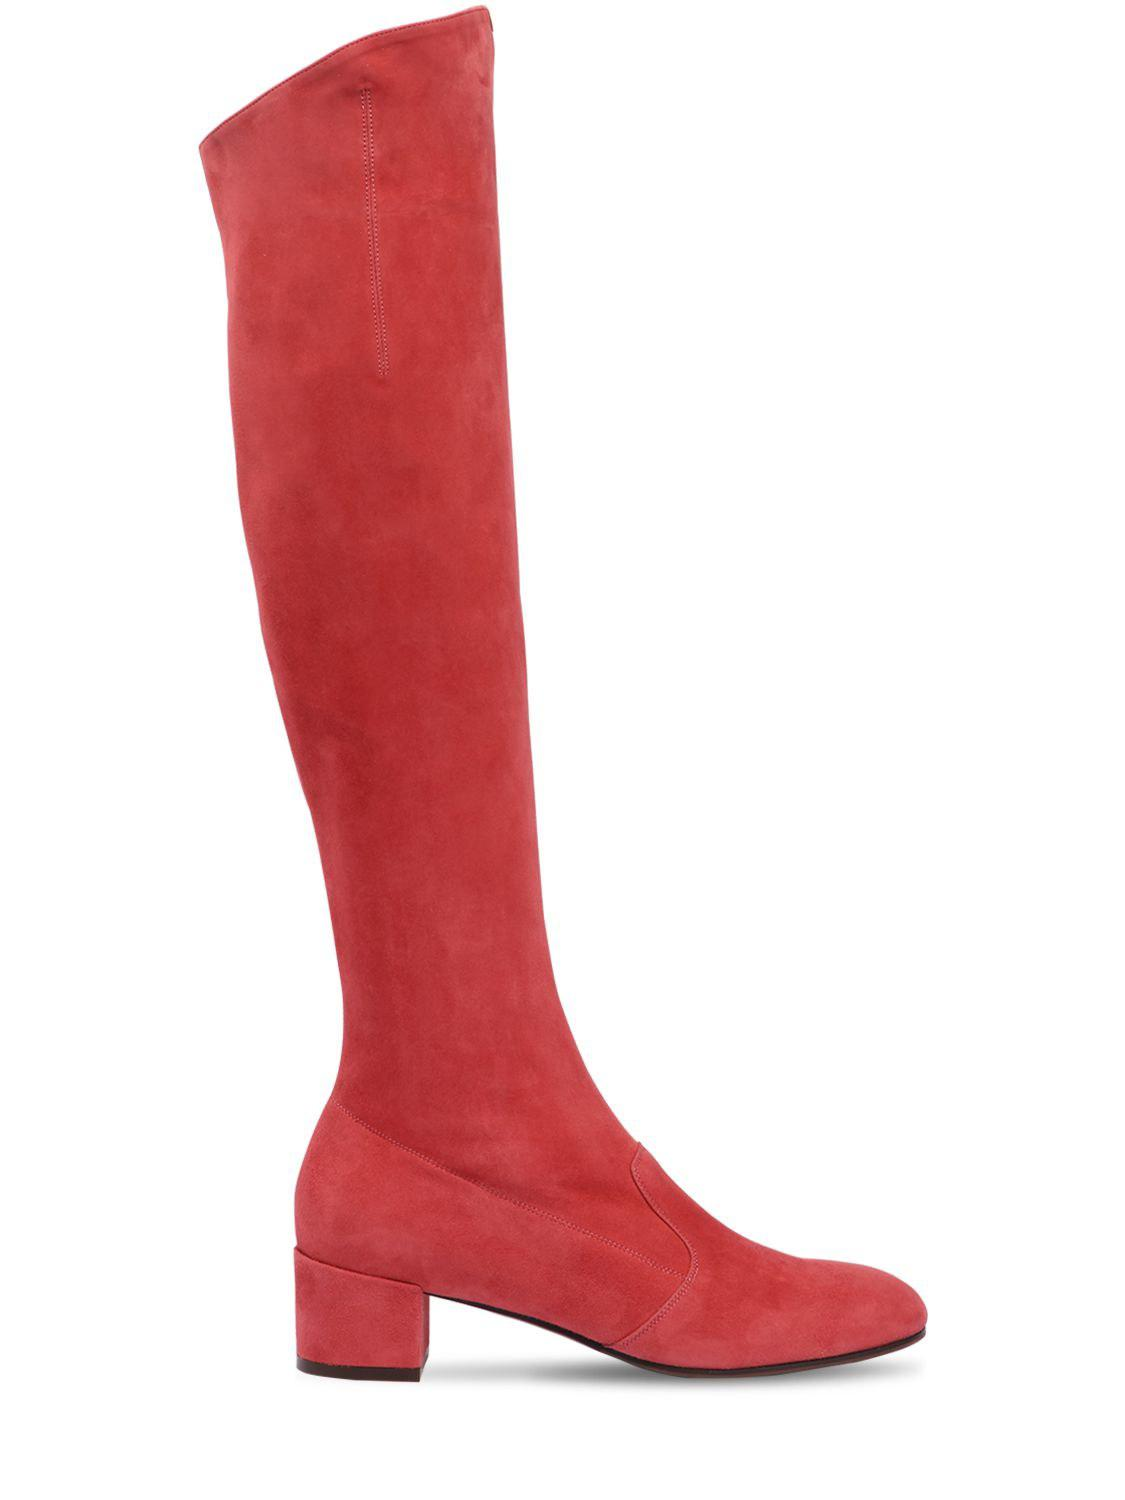 e1cb7b524b96 Lyst - L Autre Chose 30mm Barbarella Suede Over The Knee Boot in Red